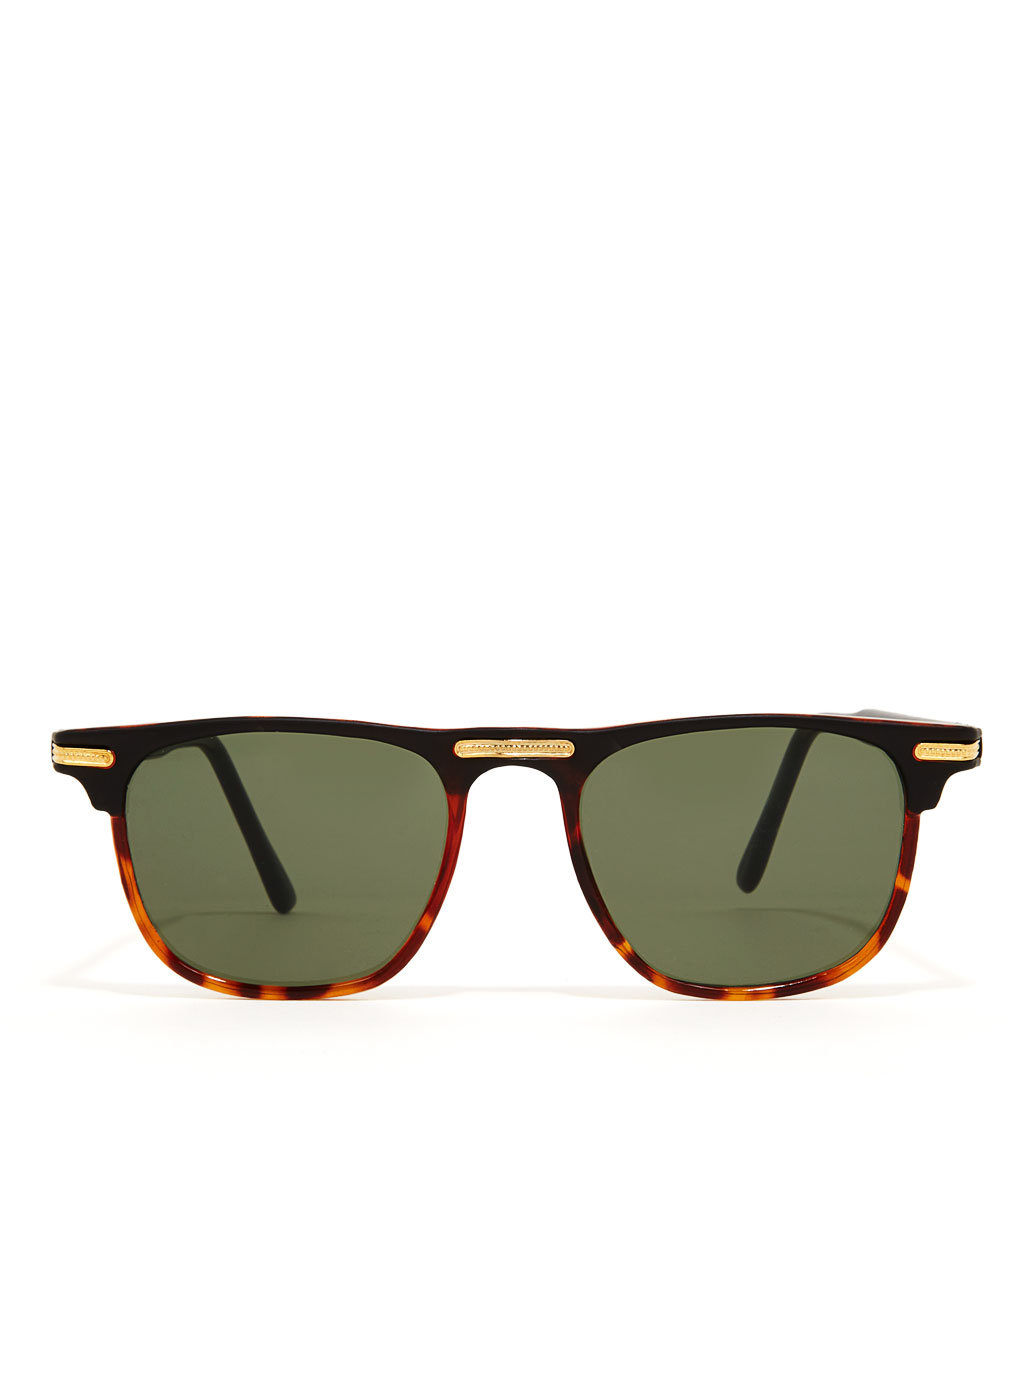 Sophy Sunglass | American Apparel